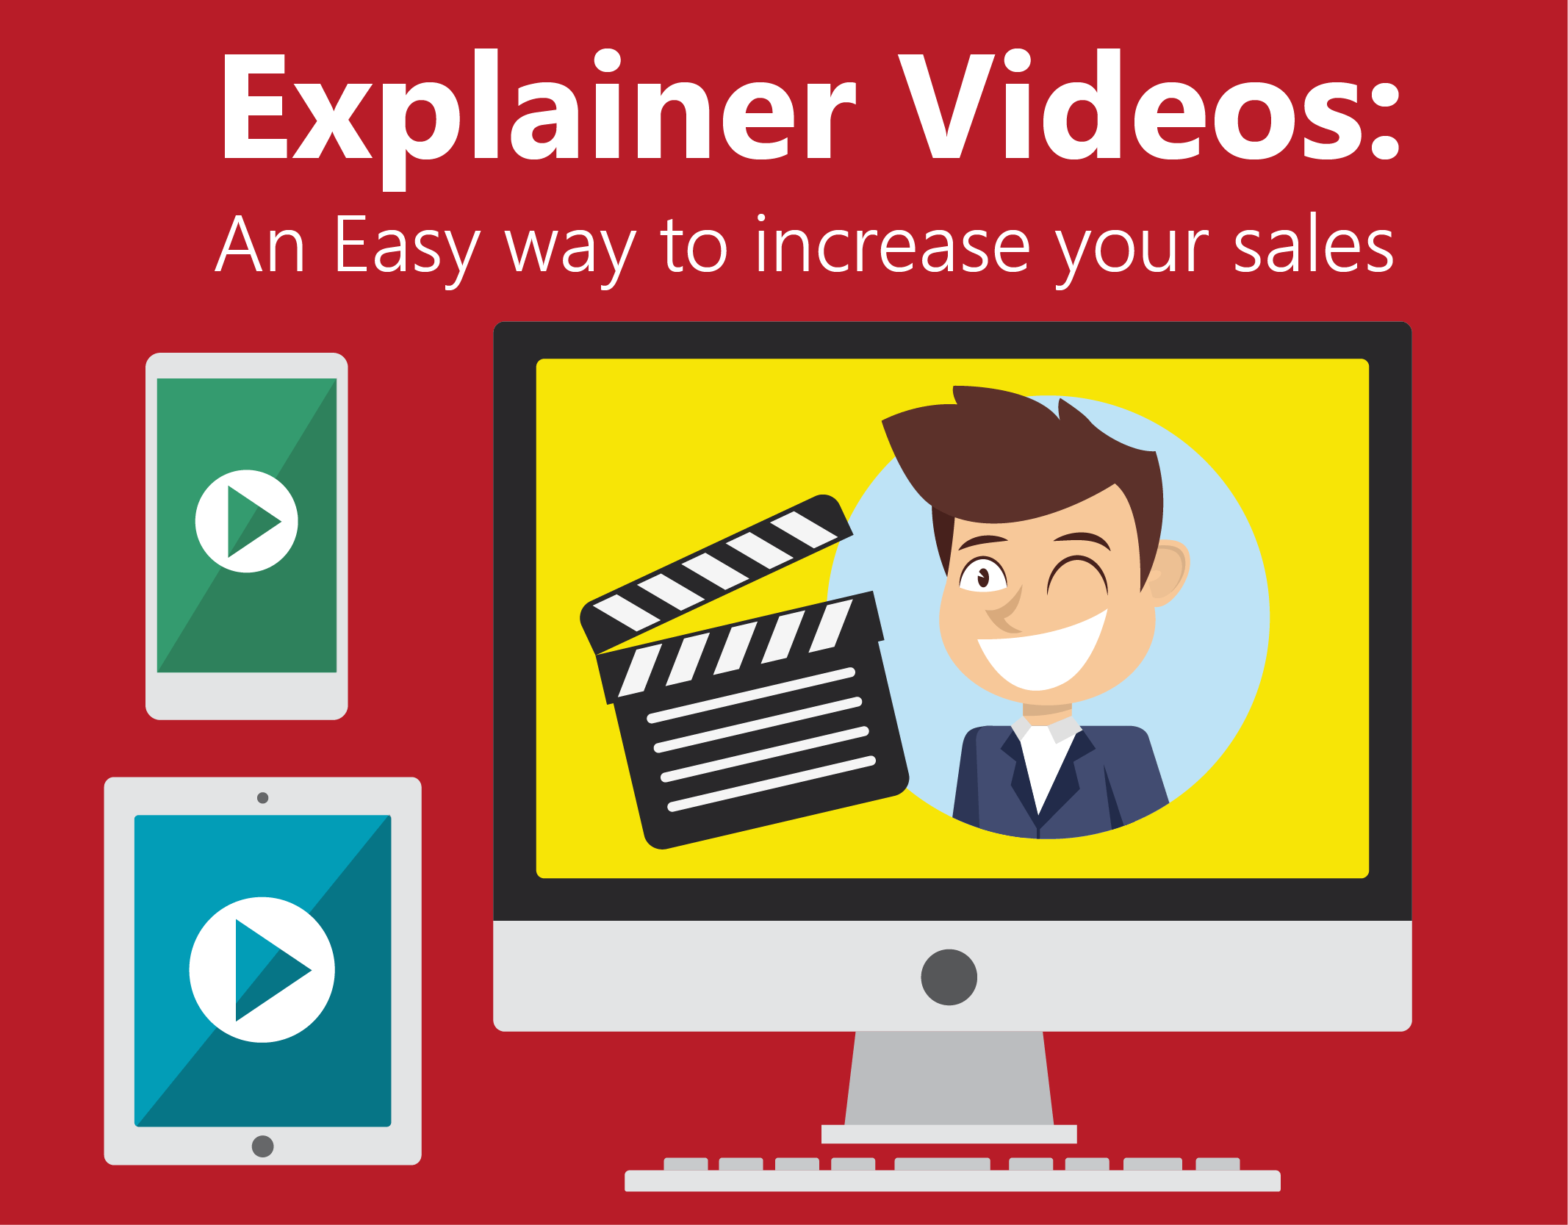 Explainer Videos: Why They Are Important for You